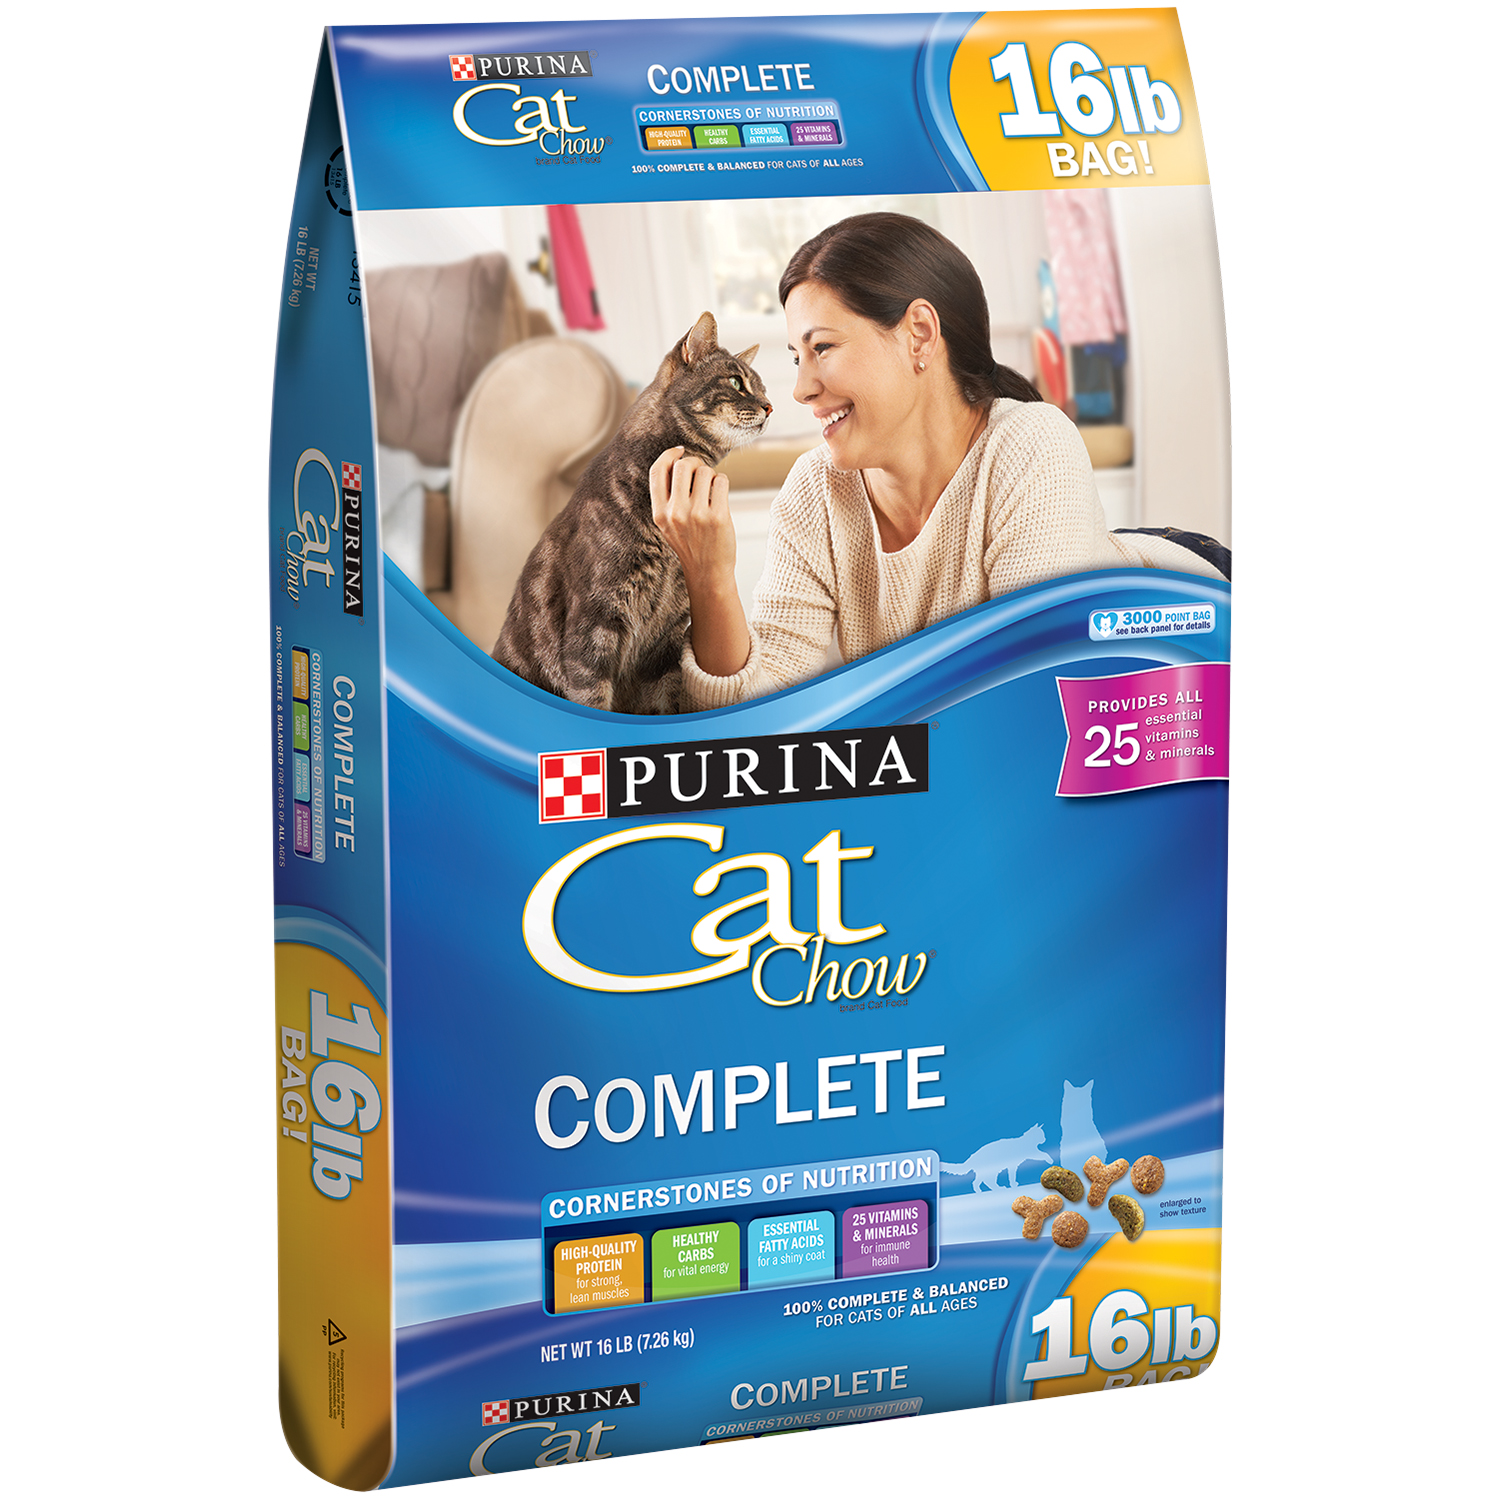 Purina Cat Chow Complete Cat Food 16 lb. Bag